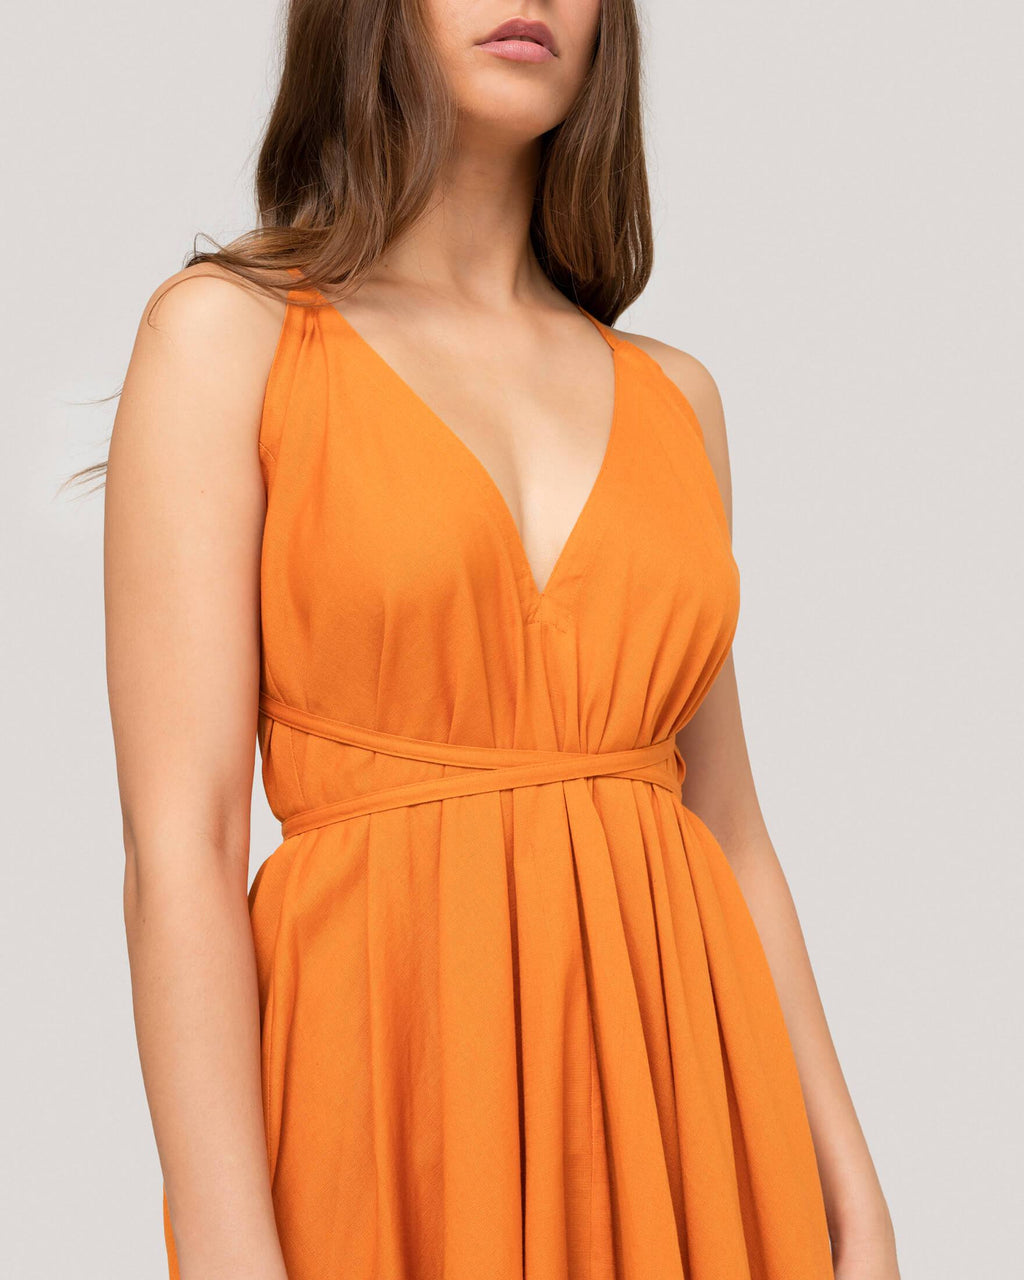 variant_2 | EN Orange Dress Summer Women Suite13 | DE Orangenes Kleid Lang Damen Suite13